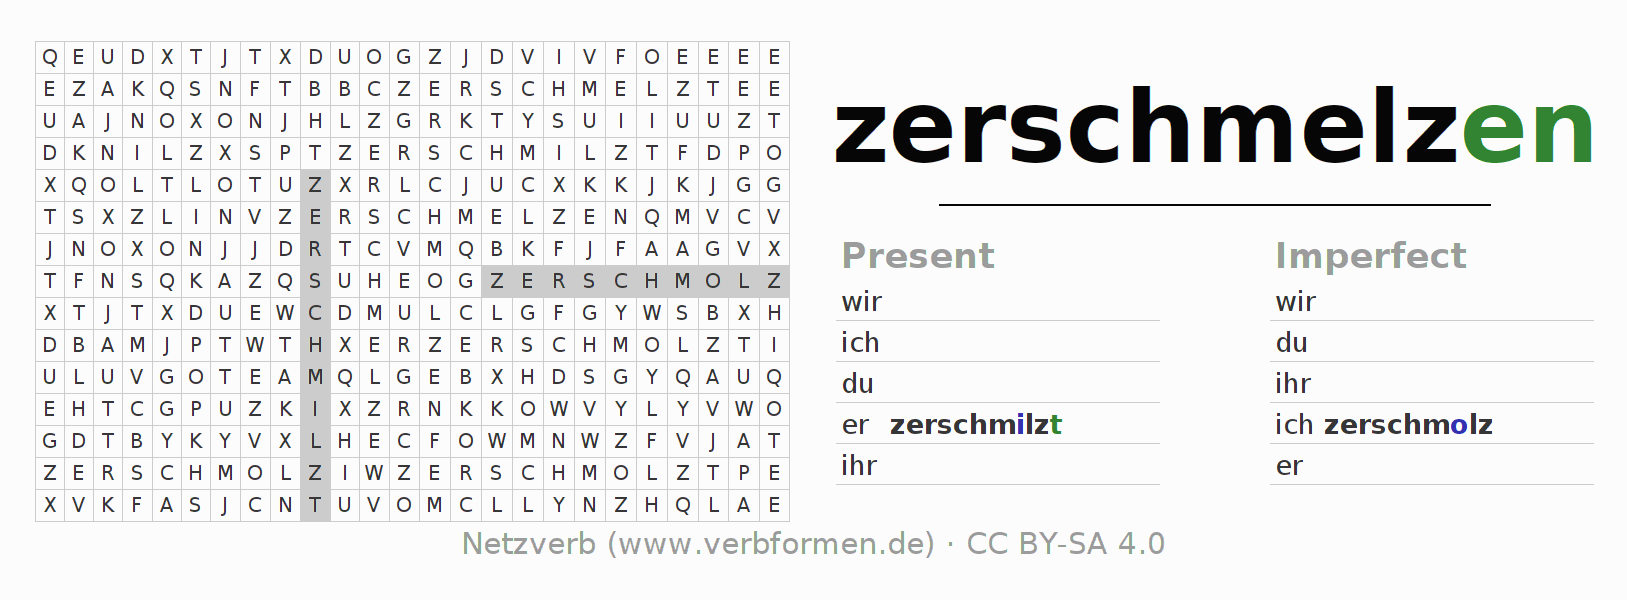 Word search puzzle for the conjugation of the verb zerschmelzen (hat)